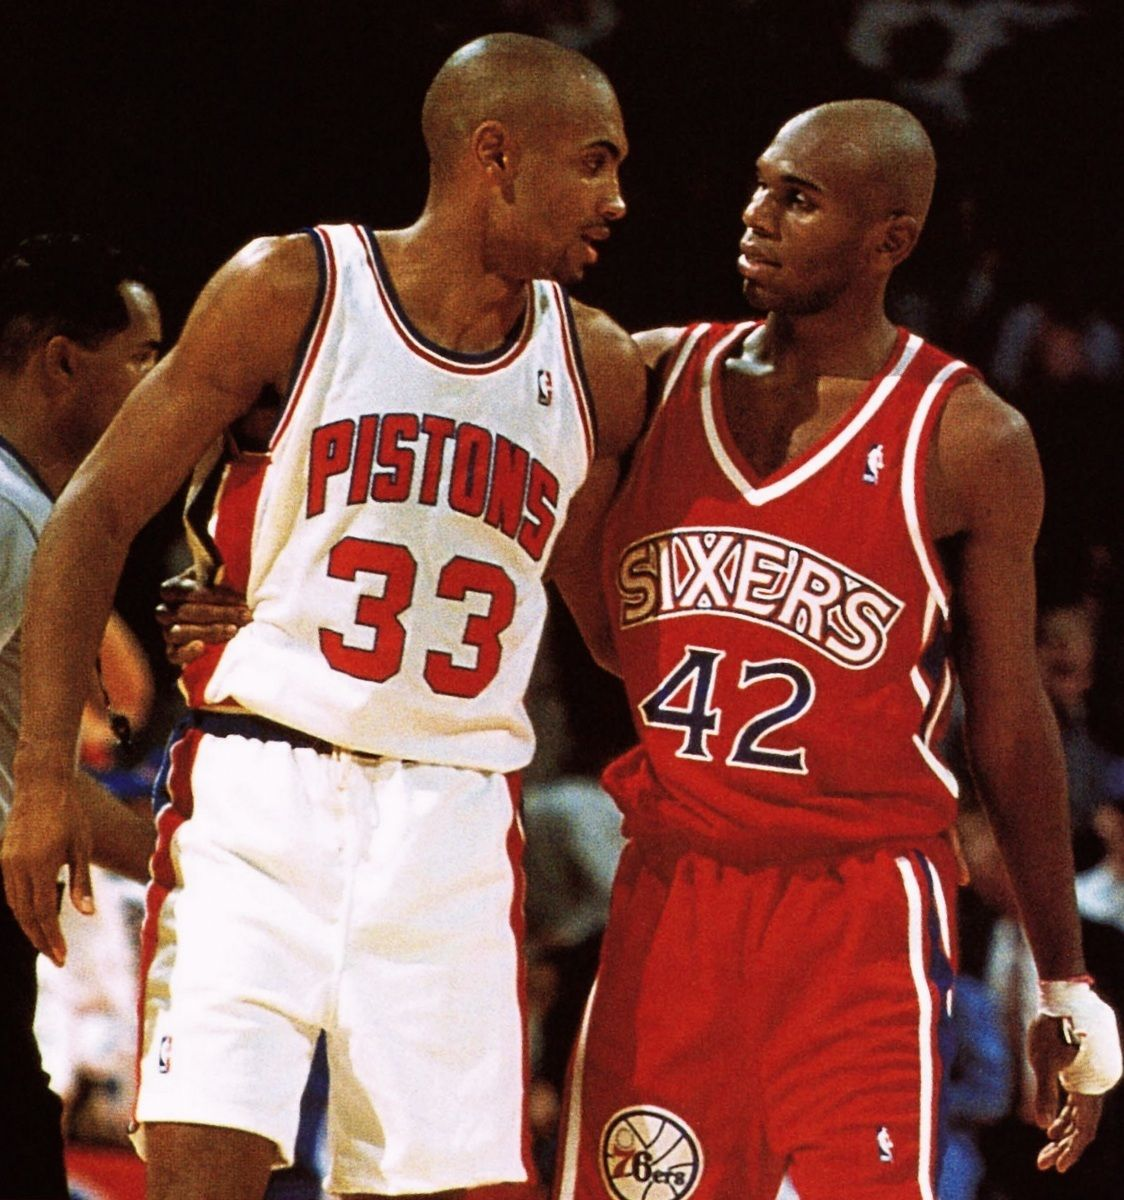 Grant Hill and Jerry Stackhouse future teammates